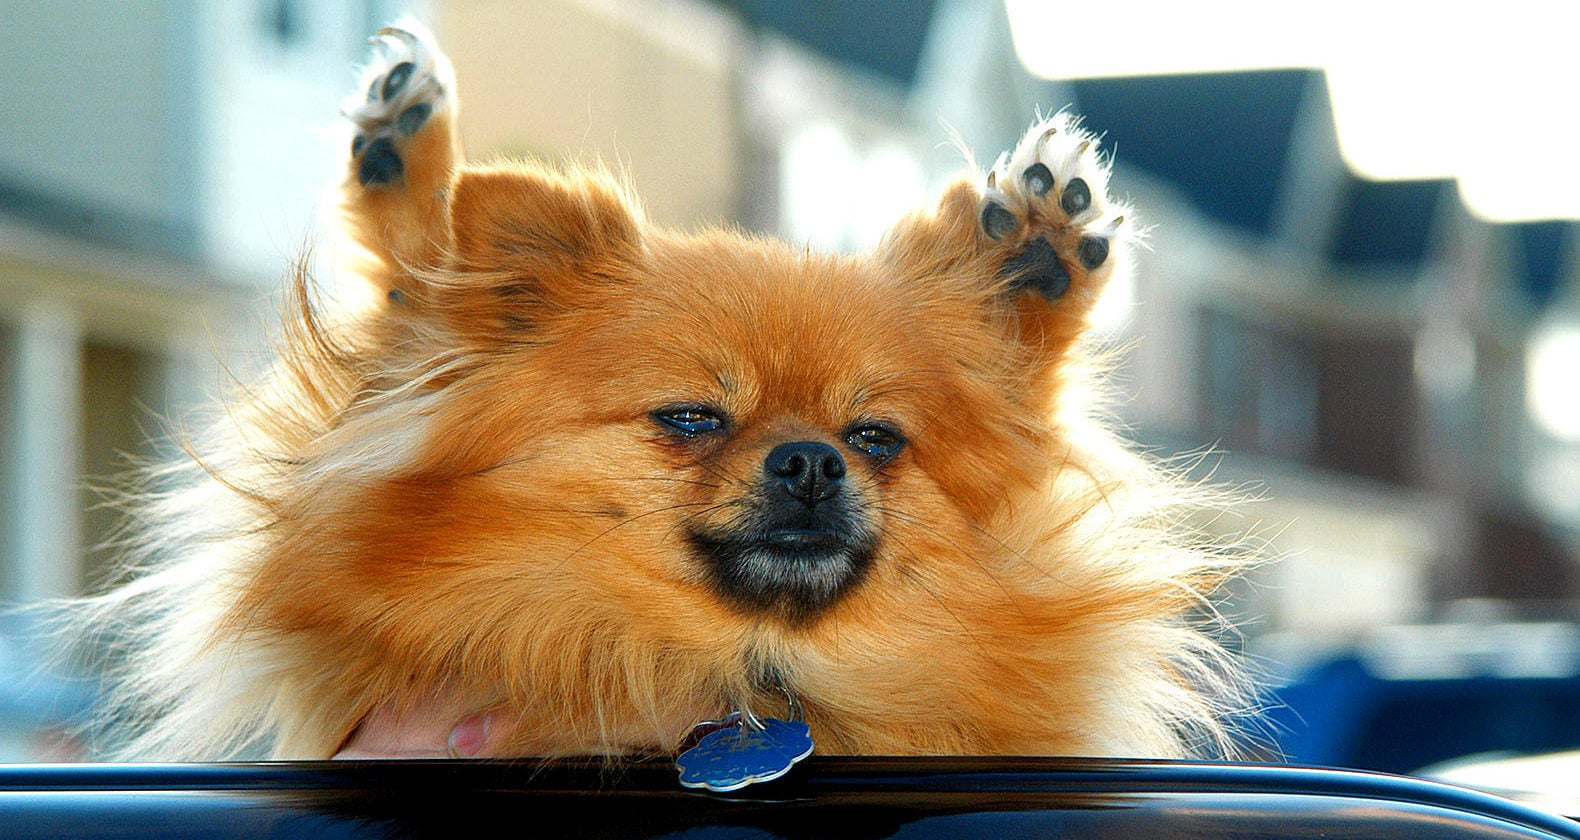 Woman Heroically Smashes the Window of a Mercedes With a Car Jack to Save a Roasting Dog